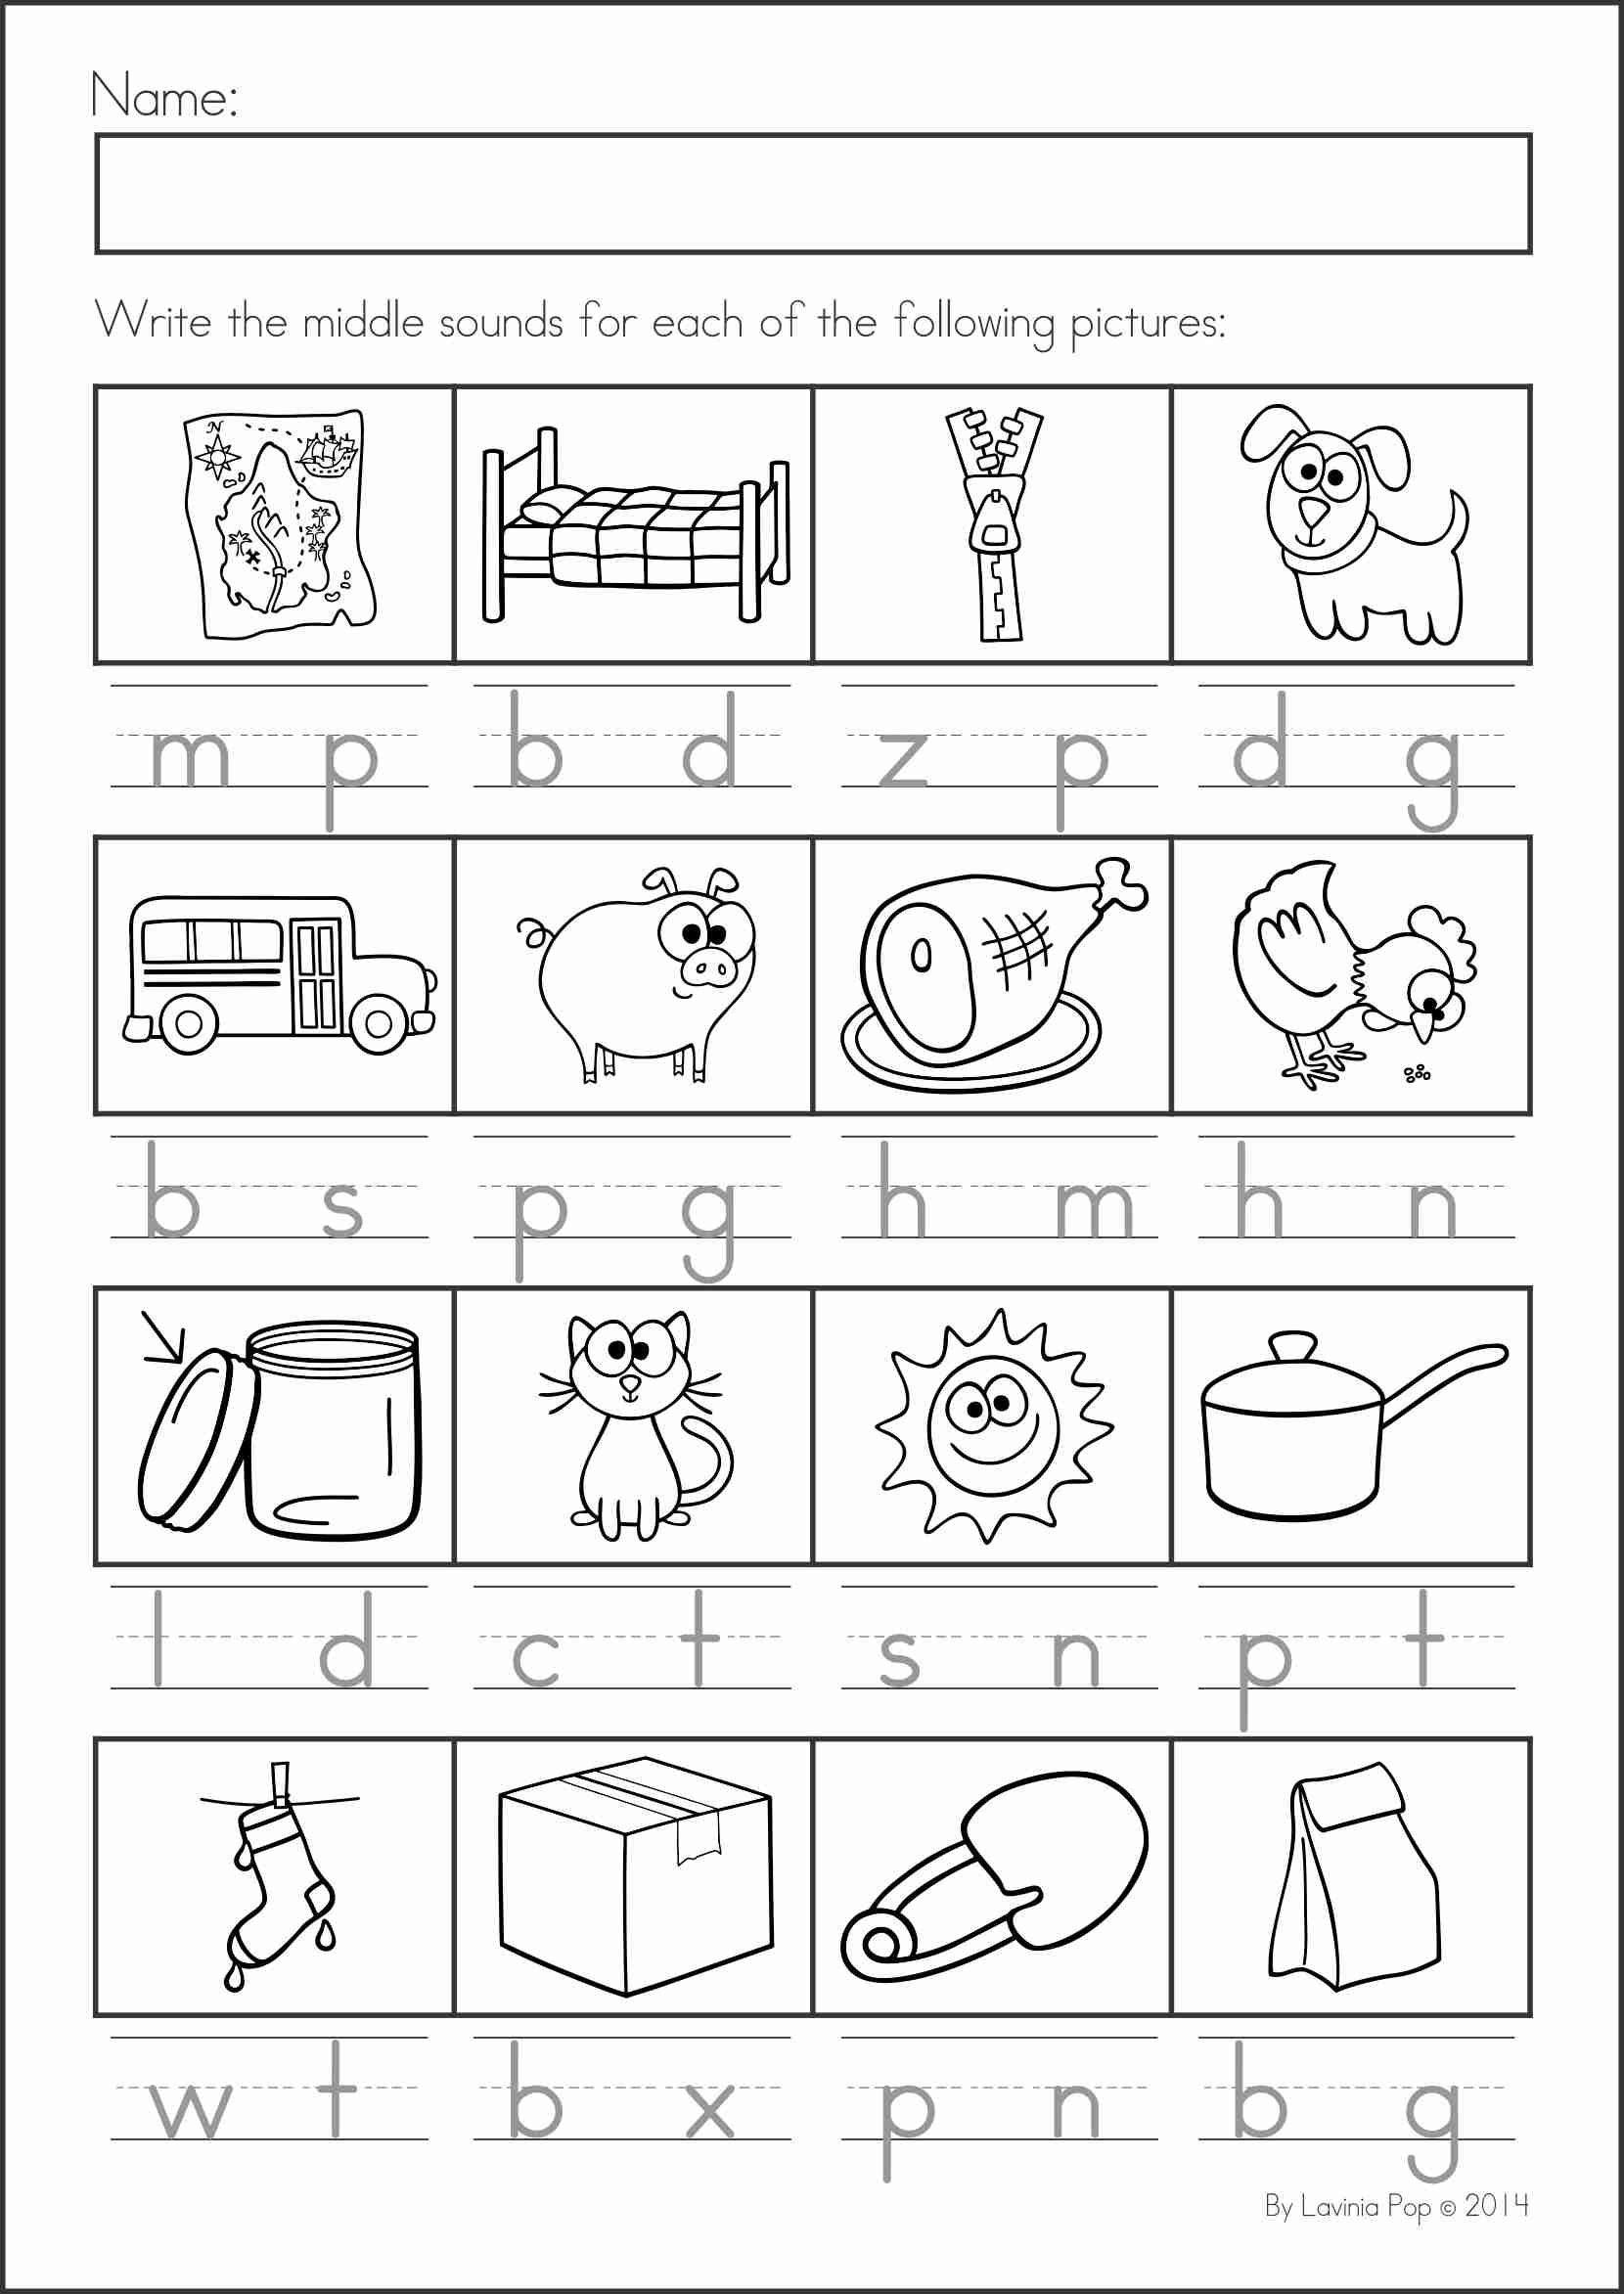 Fill in the Short Vowel – Short Vowel Sounds Worksheets for Kindergarten